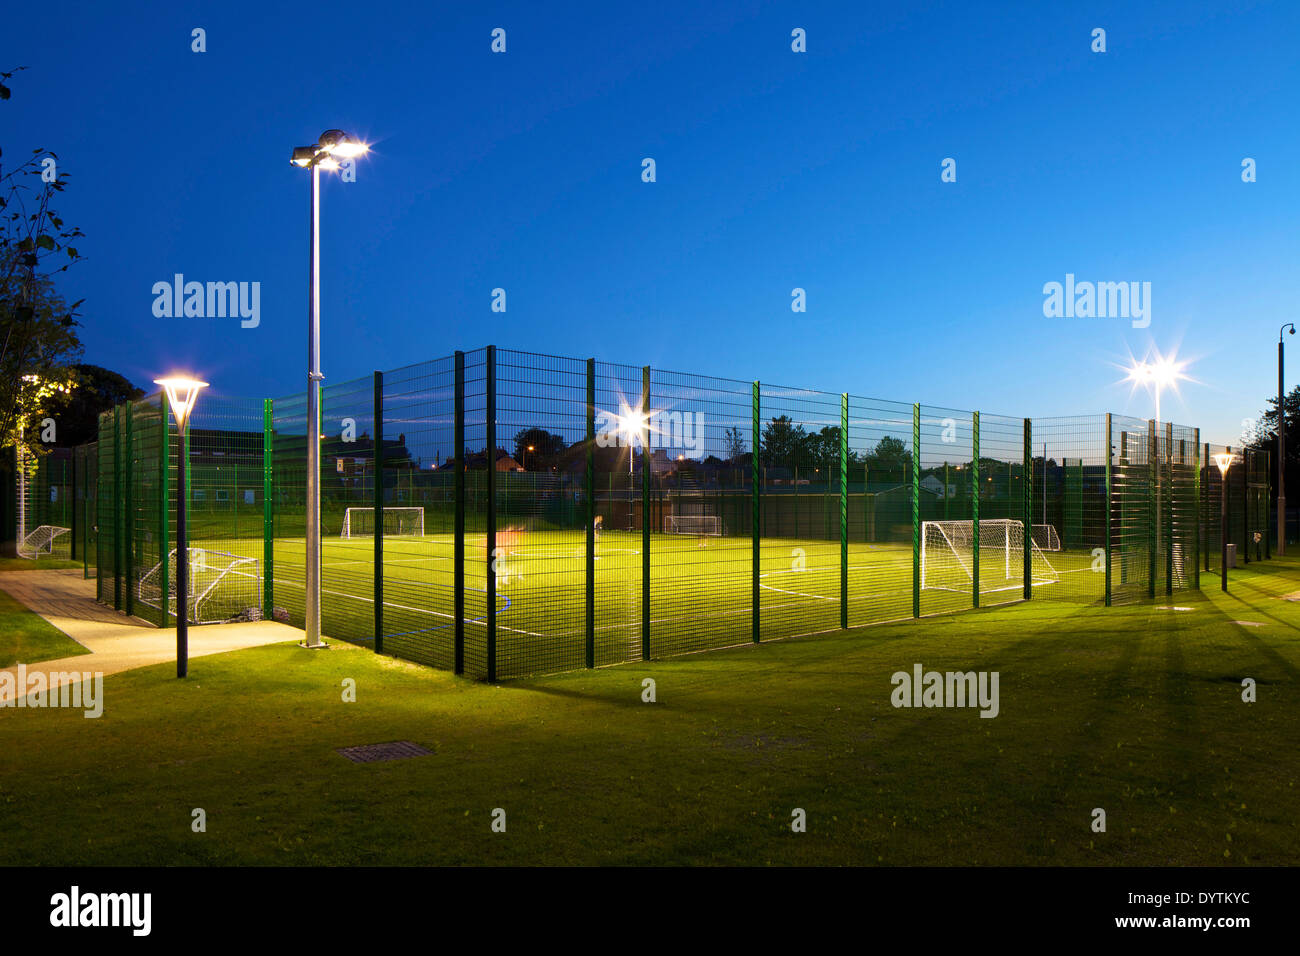 Floodlit football pitch, Houghton Primary Care Centre, Houghton-le-Spring - Stock Image